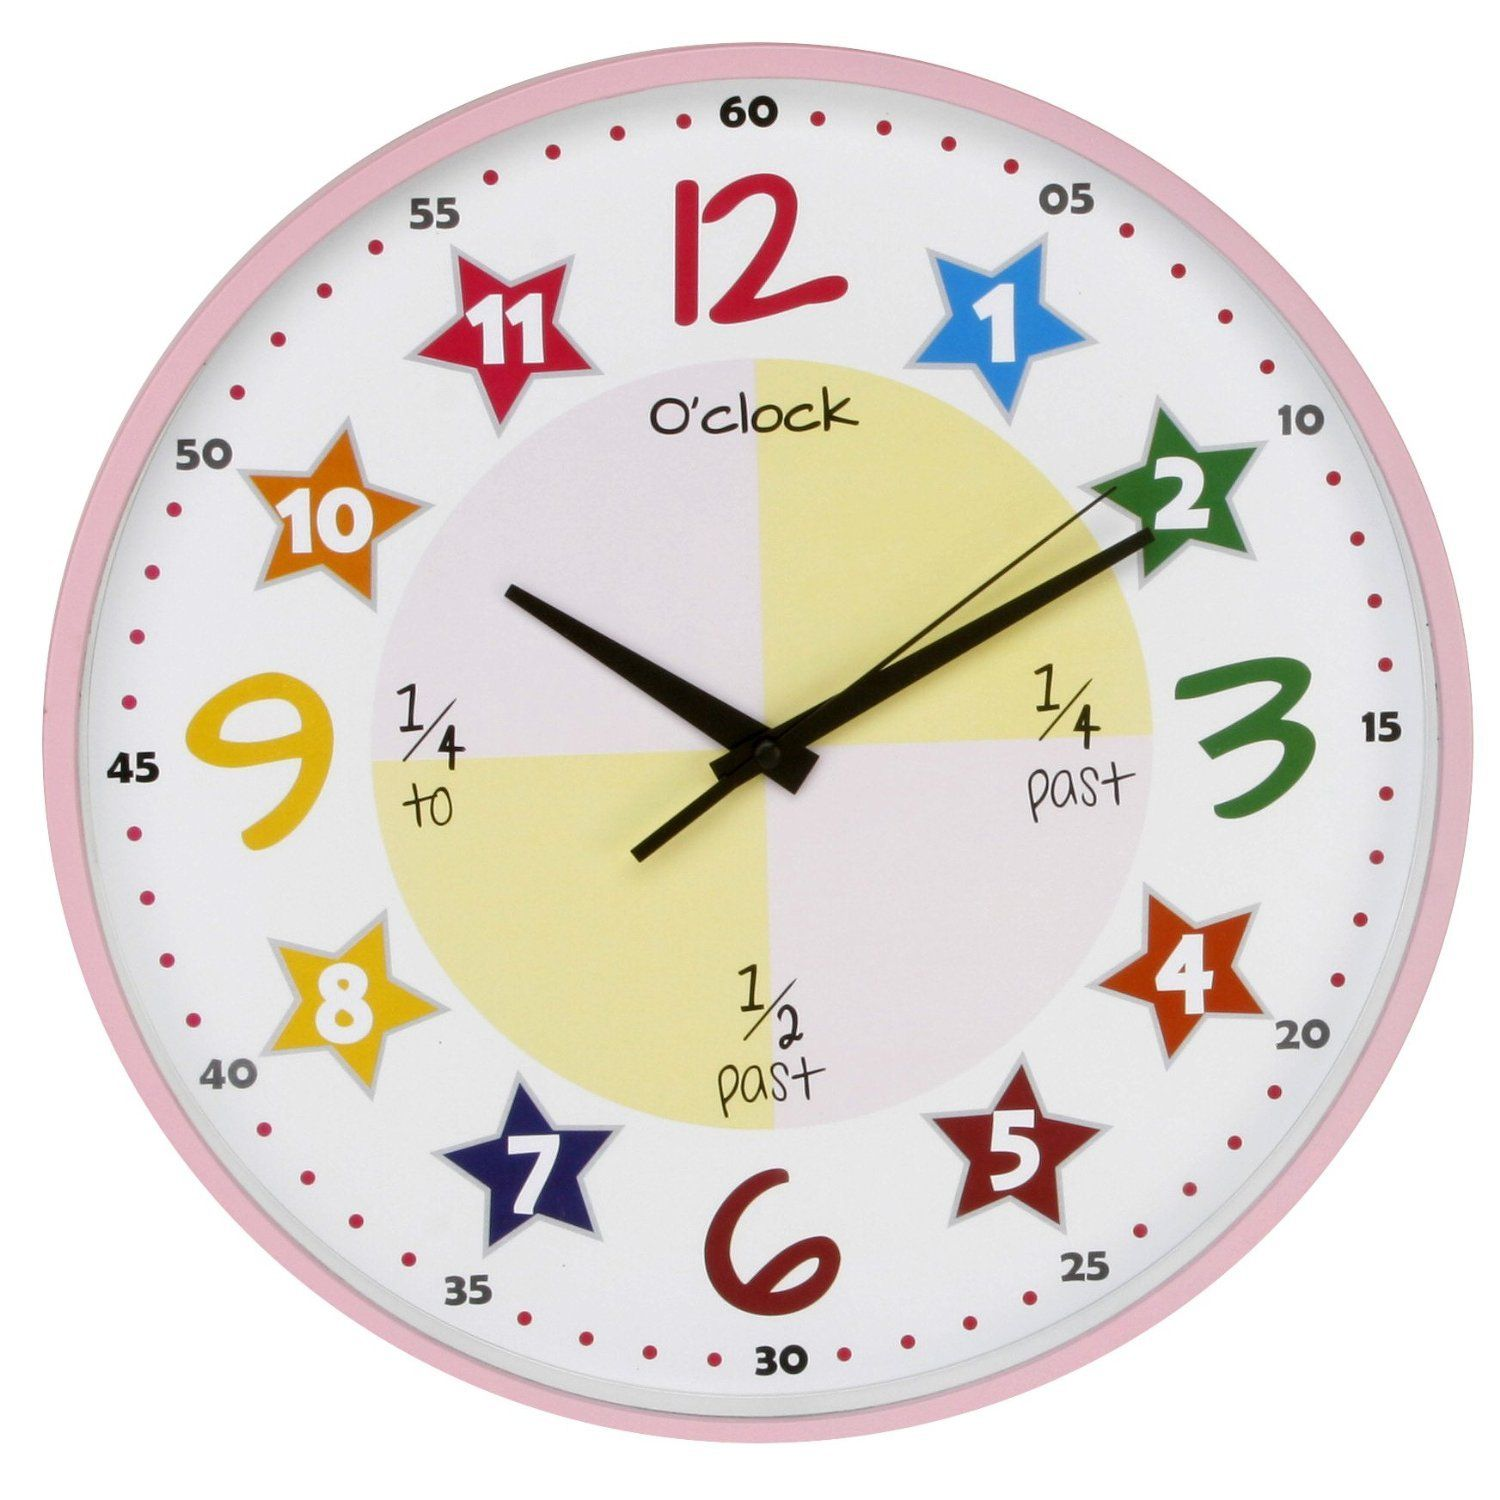 Bright Bold Pink Colourful Teach The Time Wall Clock Amazon Co Uk Kitchen Home Colorful Wall Clocks Wall Clock Simple Clock